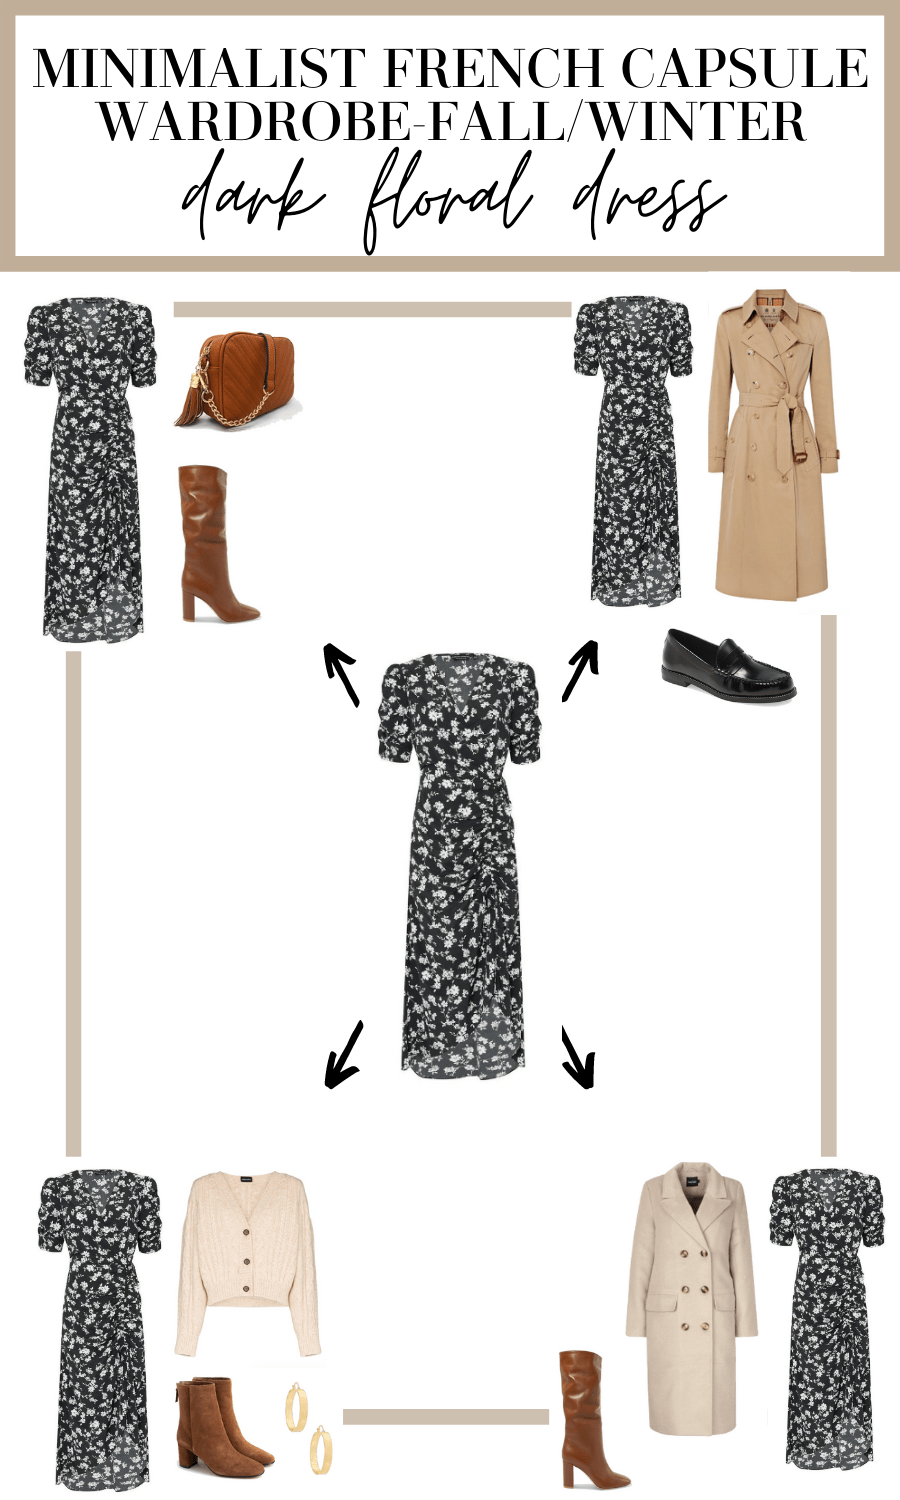 dark floral dress outfit ideas